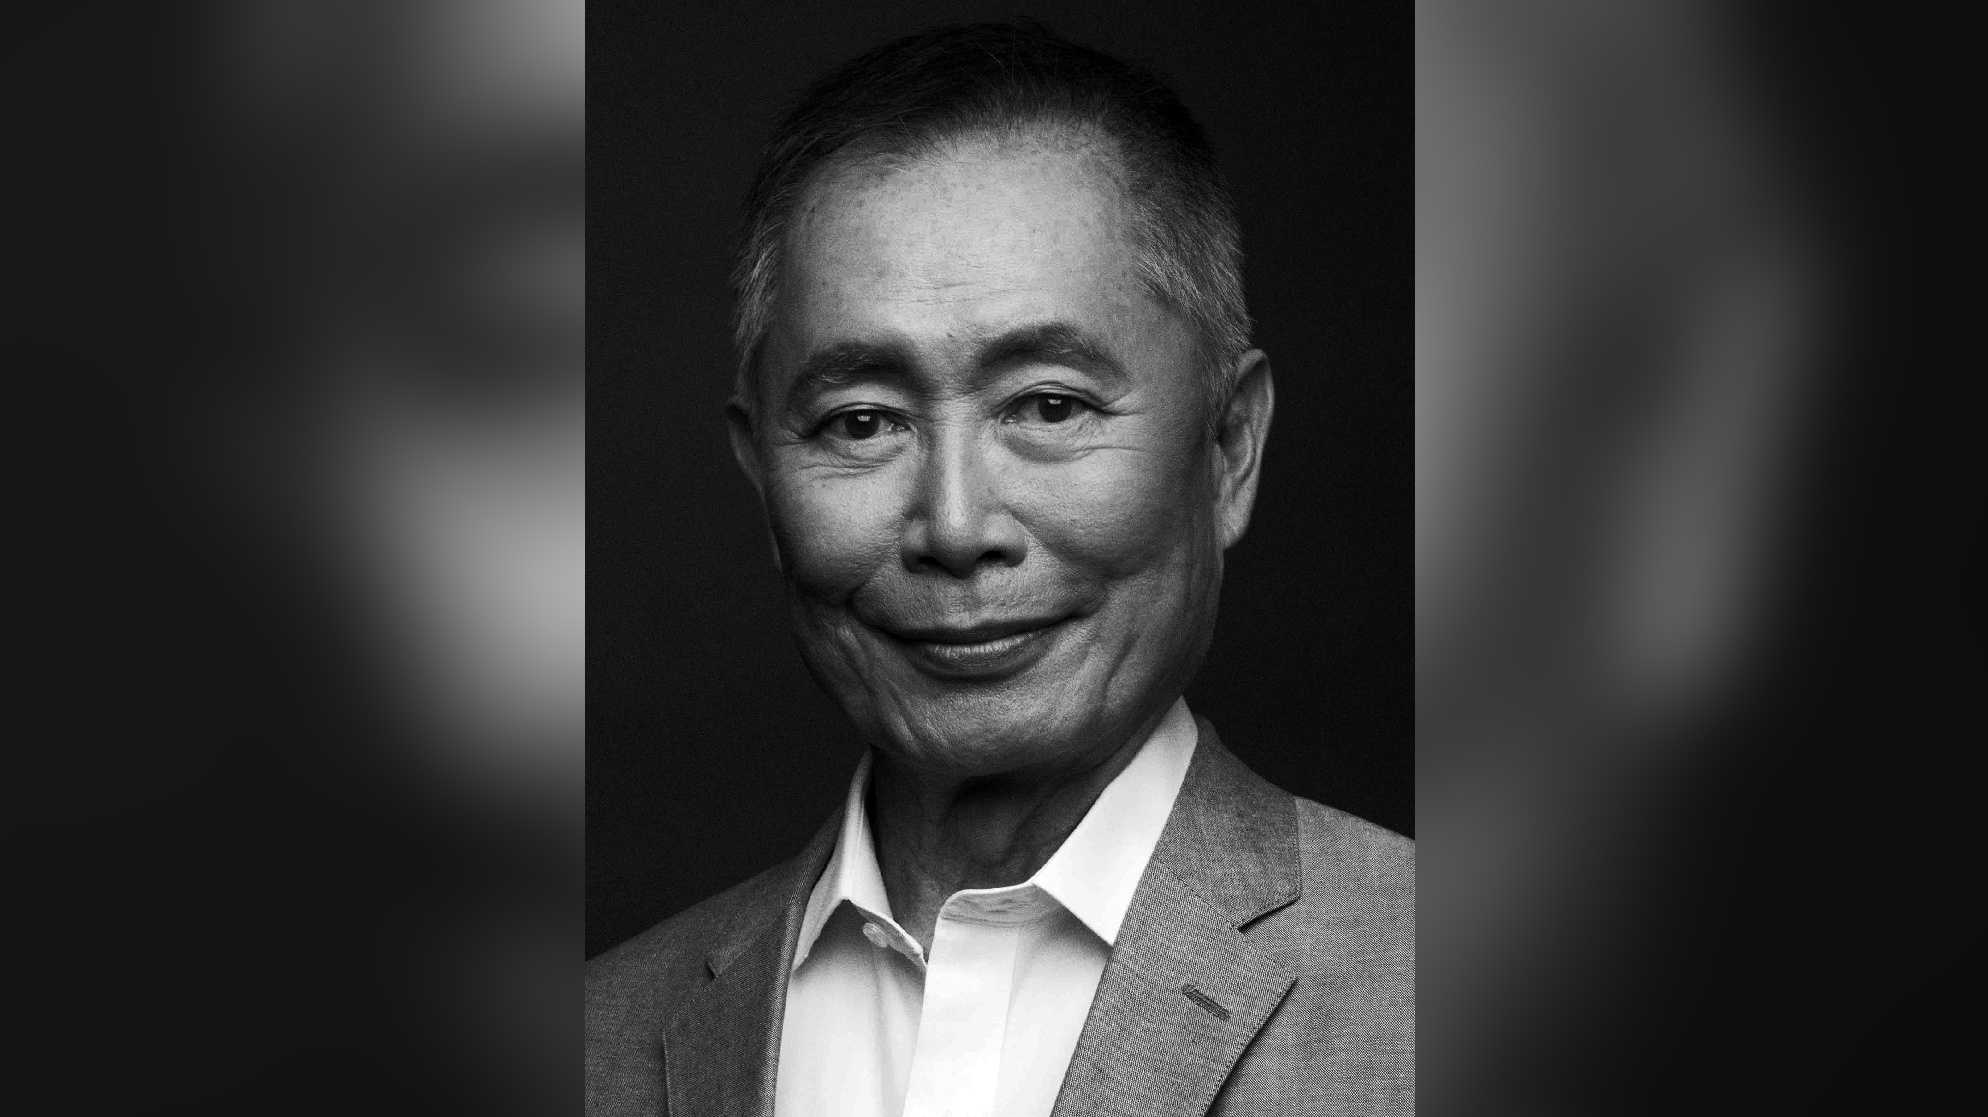 Celebrated actor and activist George Takei